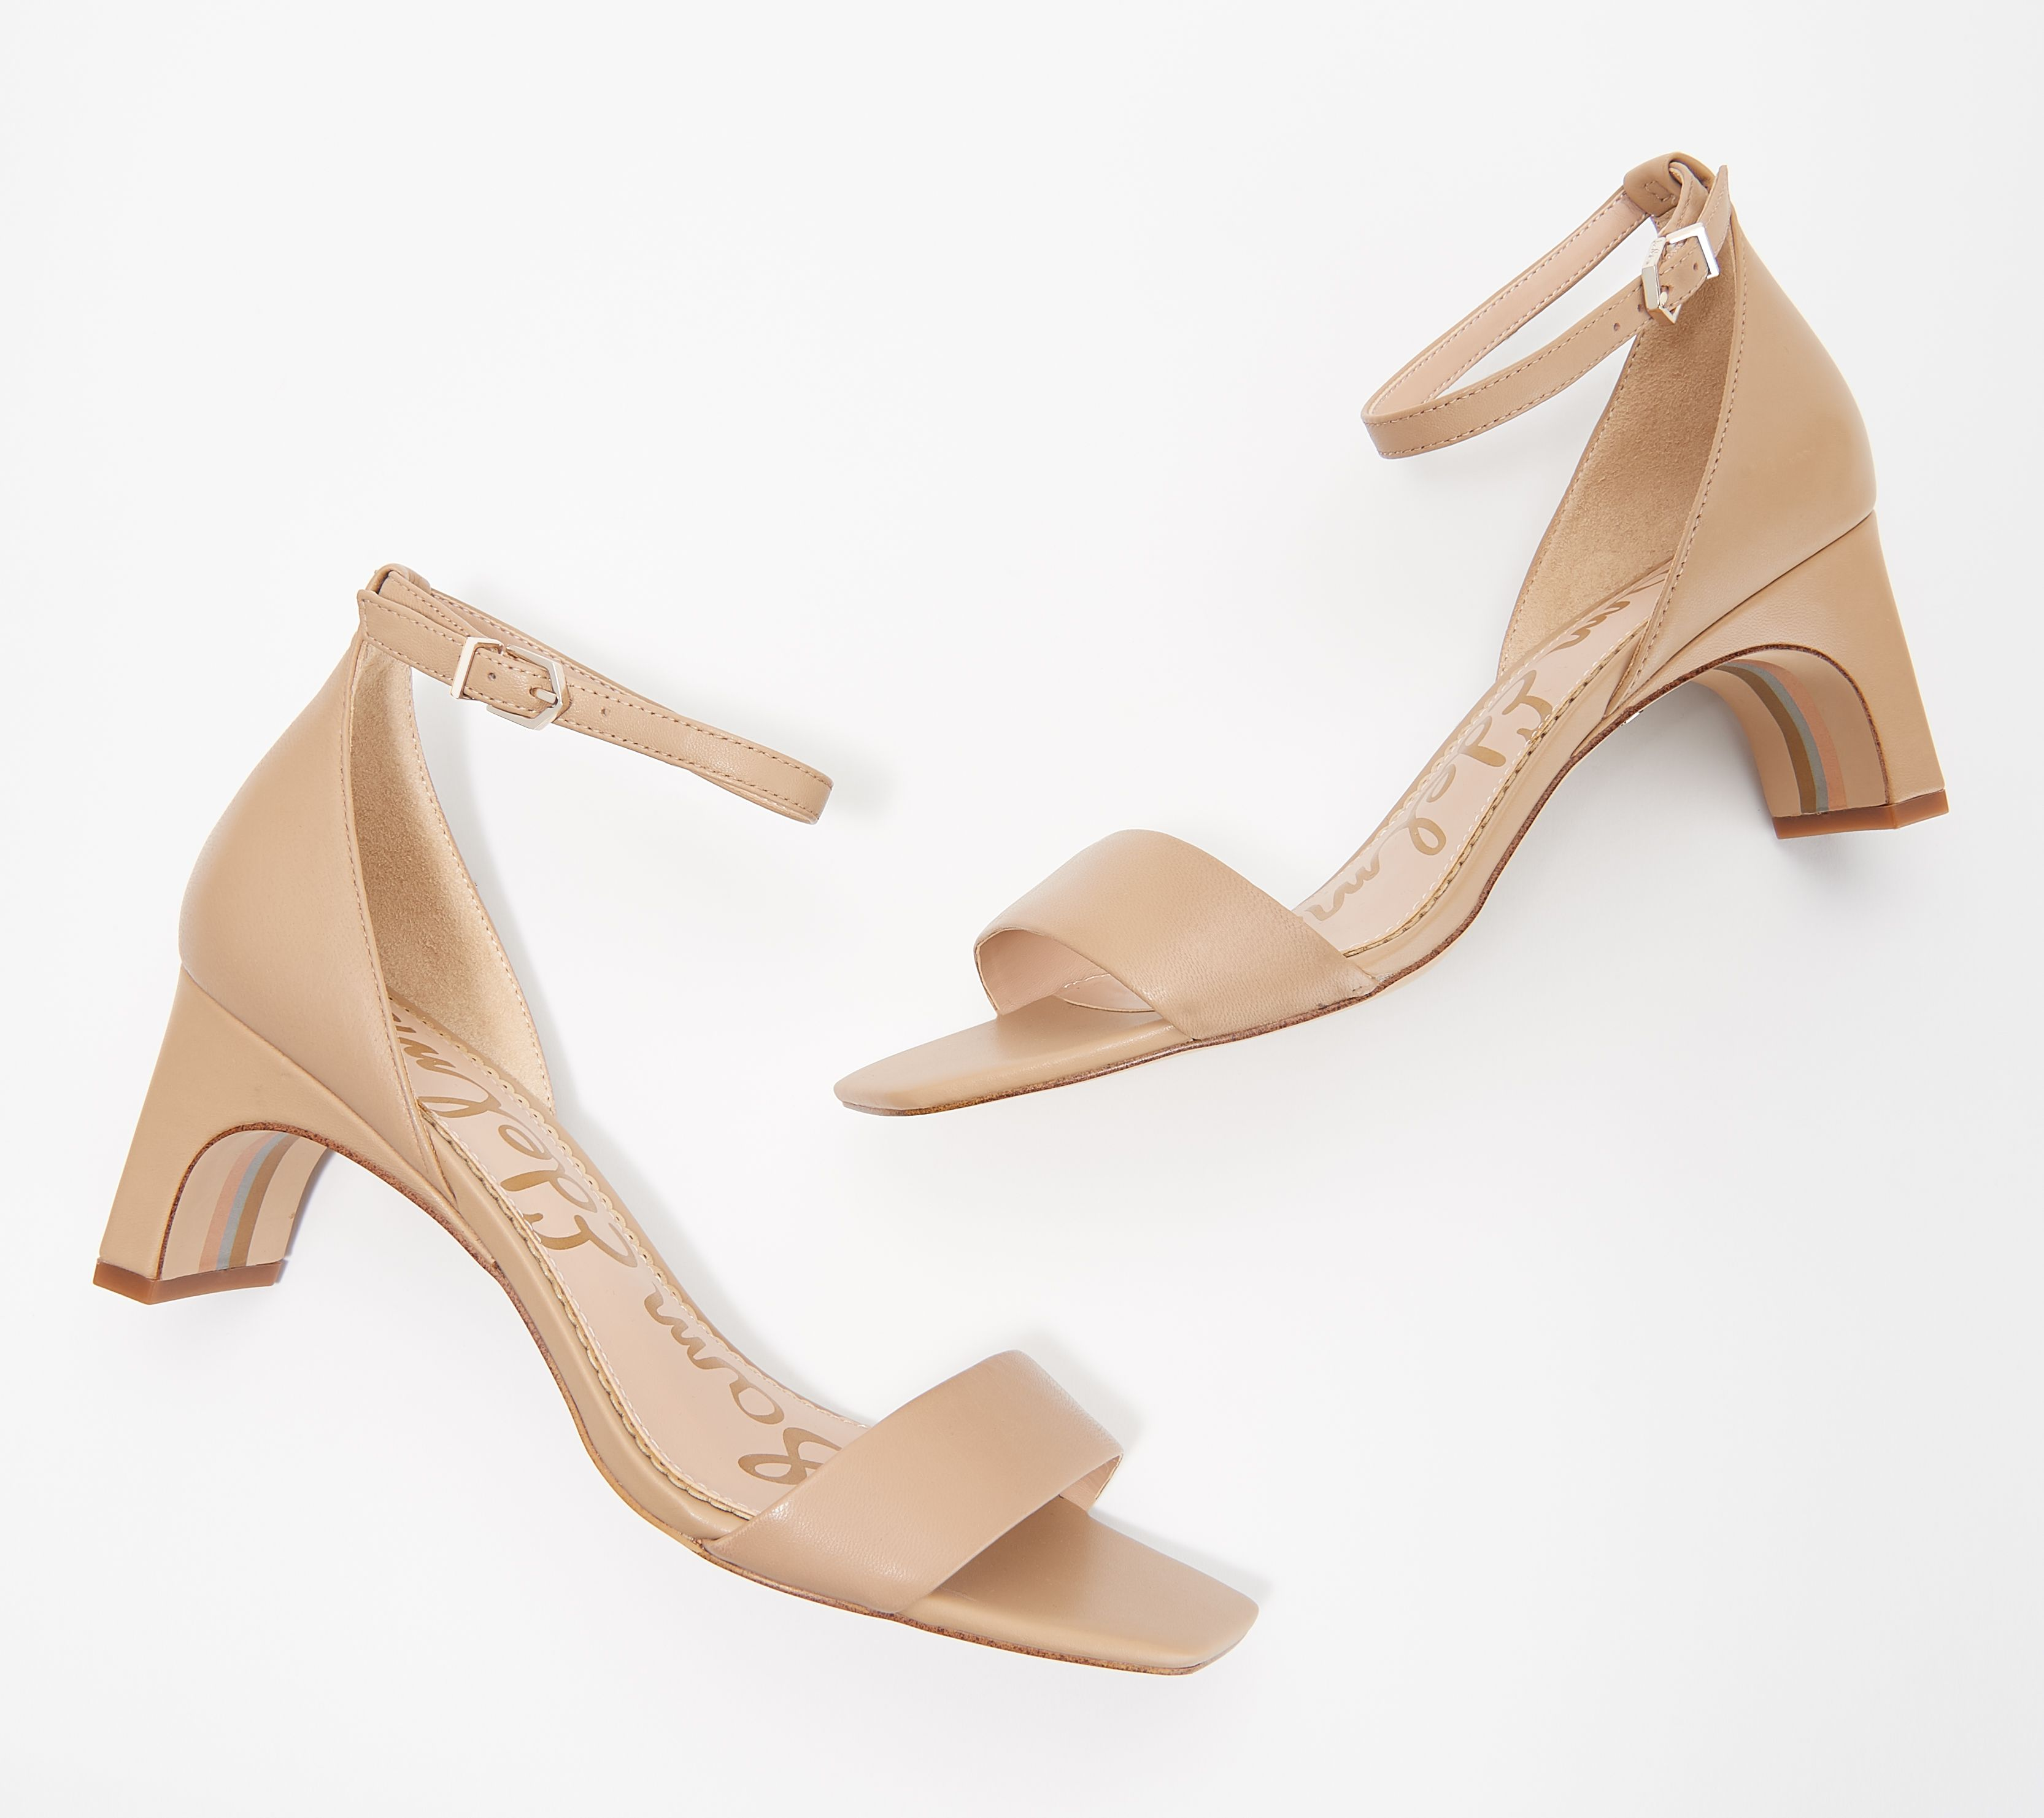 2574302c050 Sam Edelman Leather Ankle Strap Heeled Sandals - Holmes - Page 1 — QVC.com